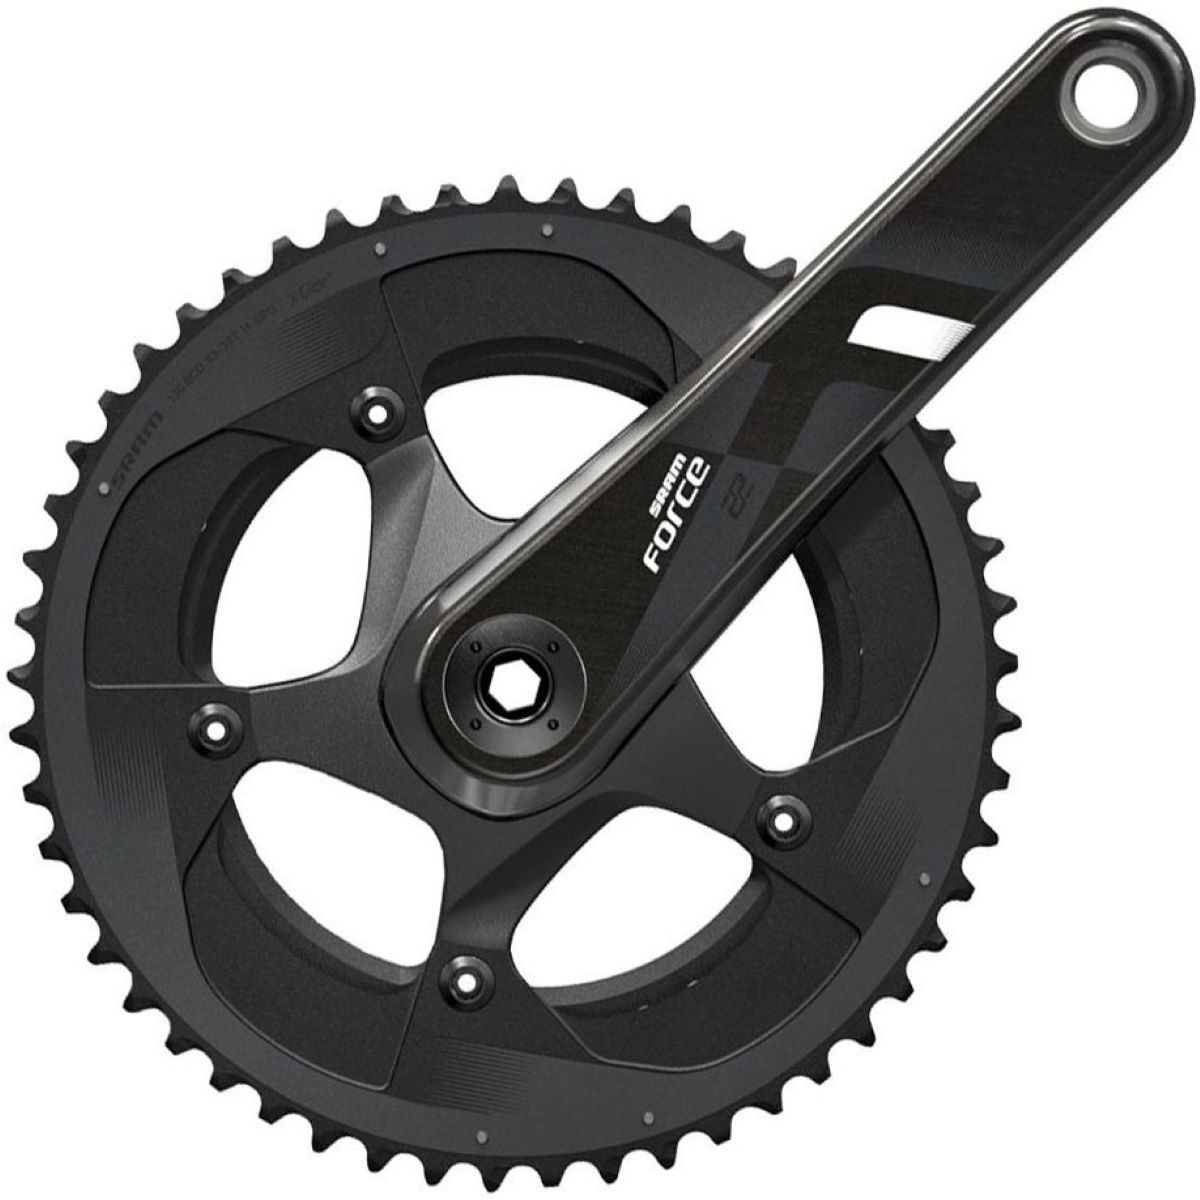 Sram Force 22 Gxp Double Chainset - 53/39t 172.5mm Black/grey